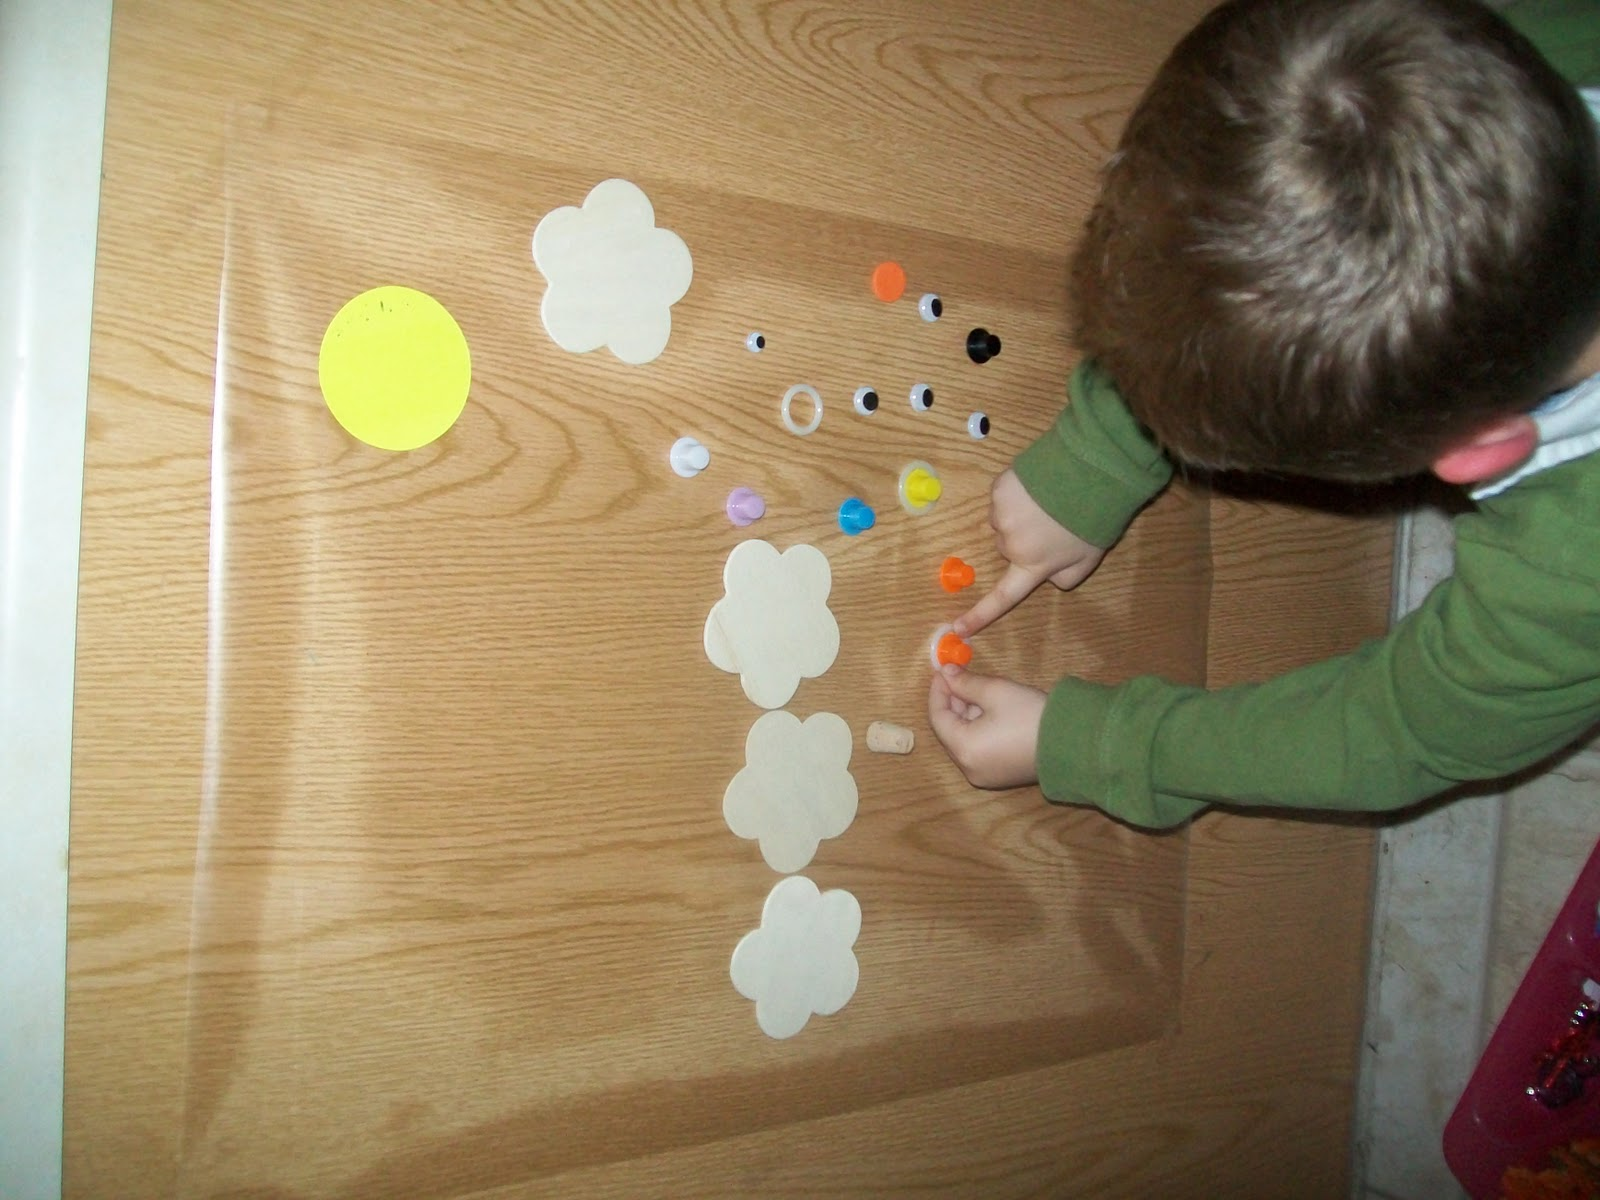 Learning With Imagination Fine Motor Skills With Contact